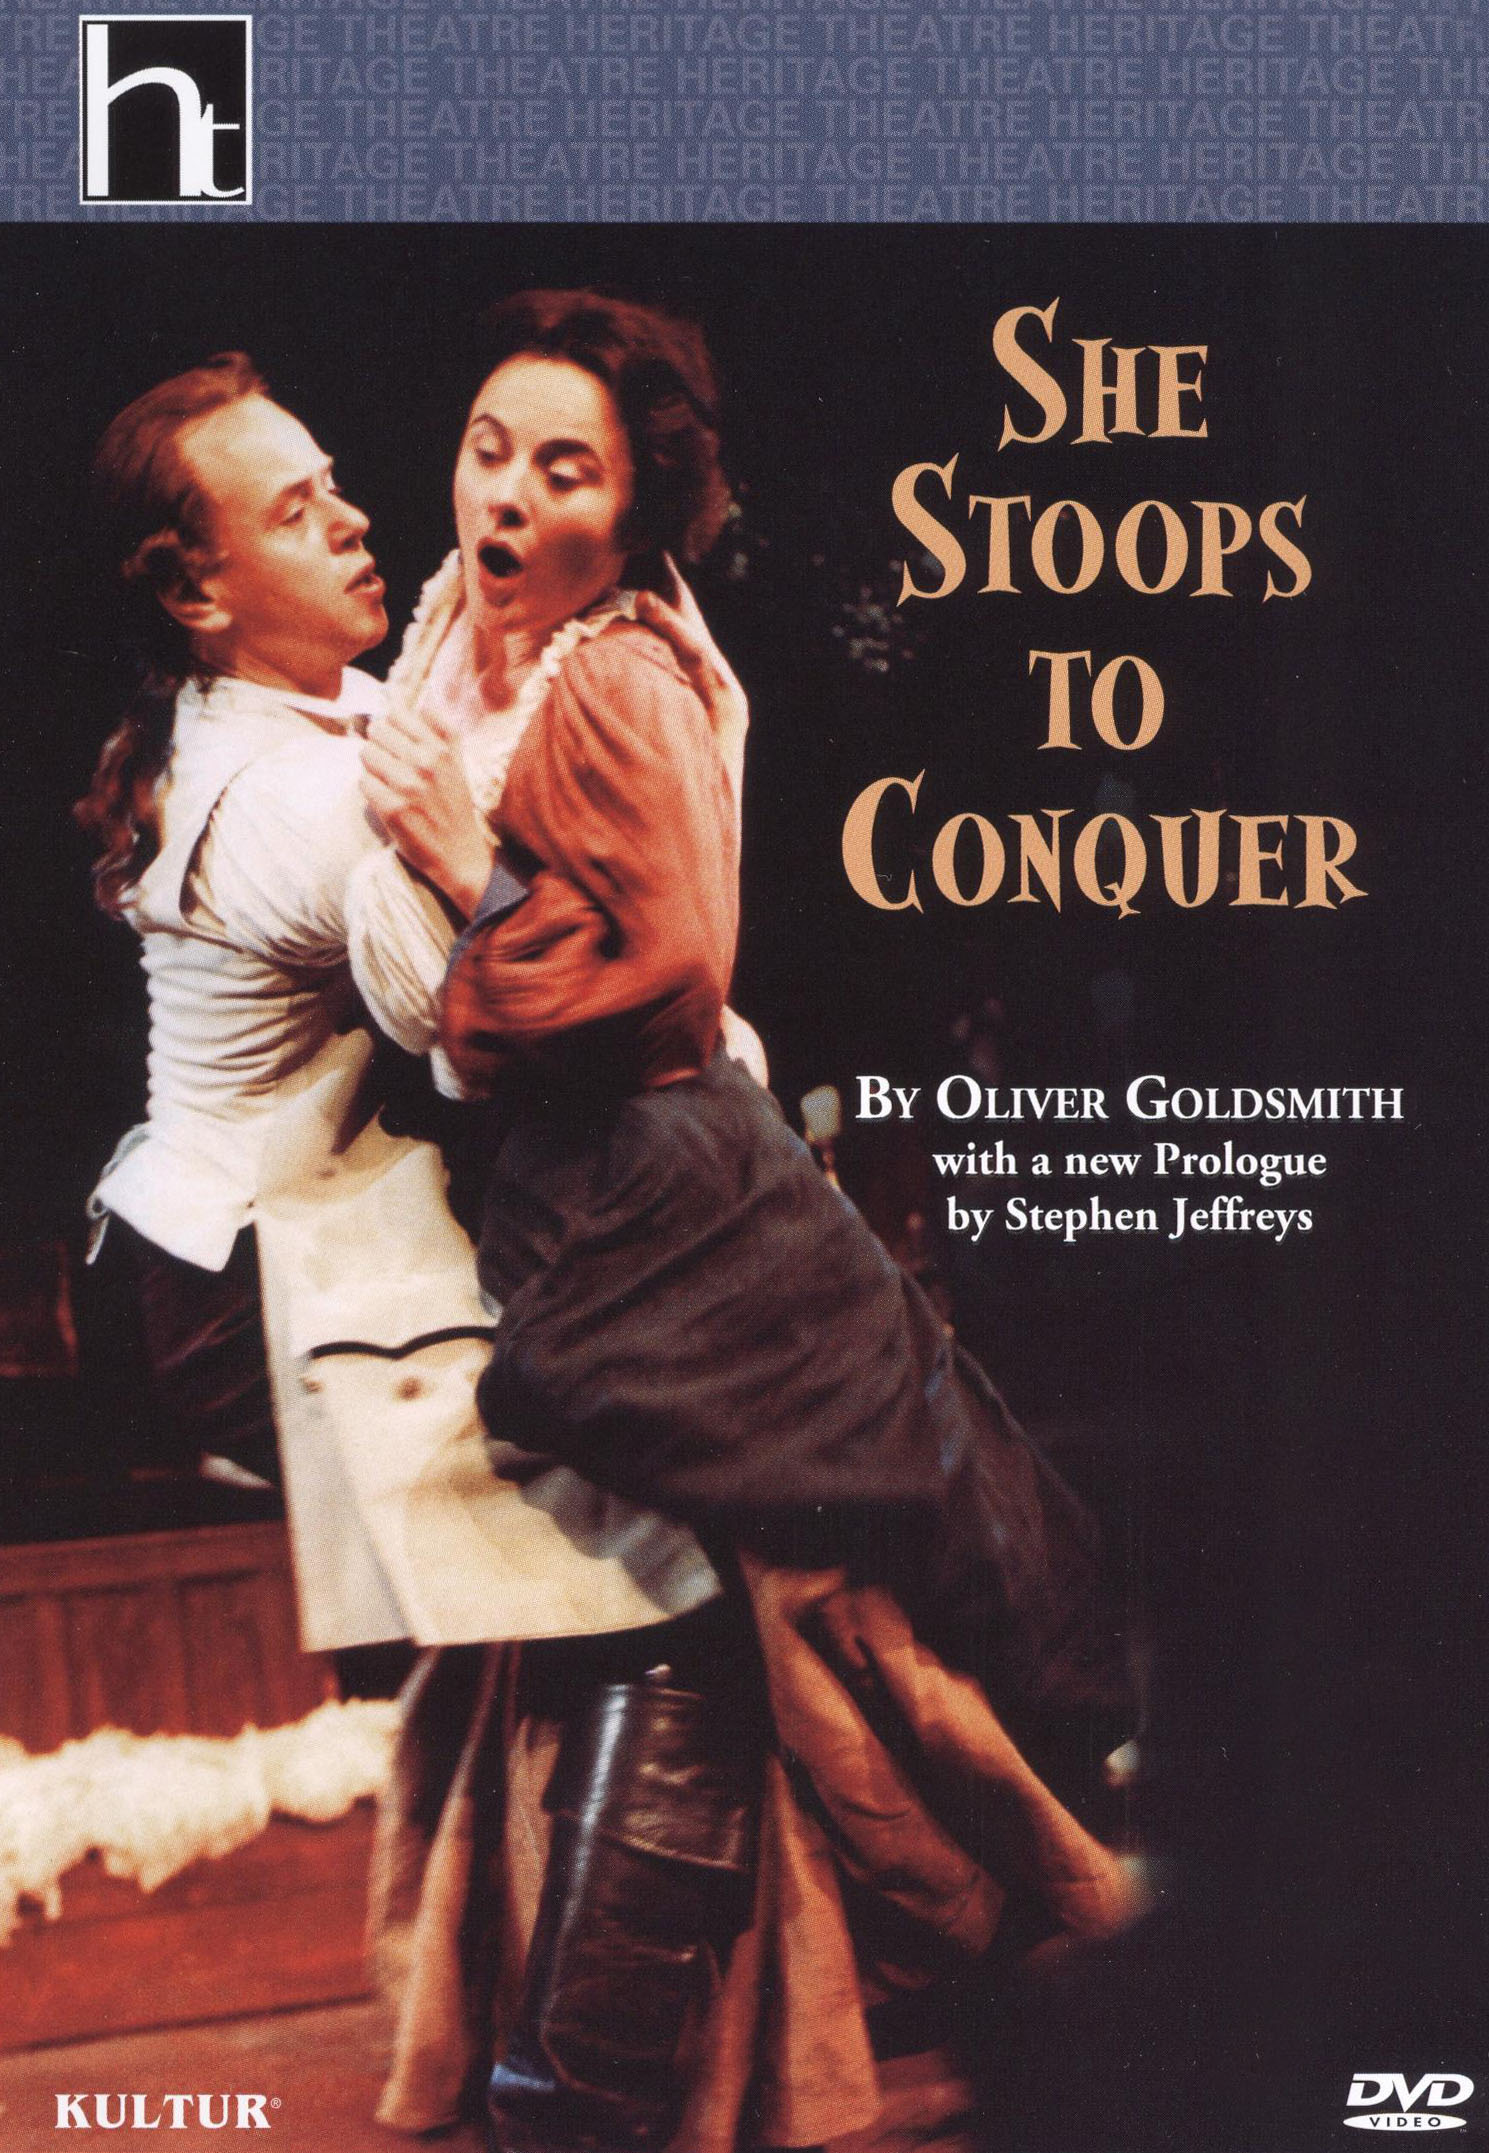 she stoops to conquer male characters Role and character analysis of maid in she stoops to conquer maid: kate's servant the woman who tells her that marlow believed kate to be a barmaid, which leads kate towards her plan to stoop and conquer.